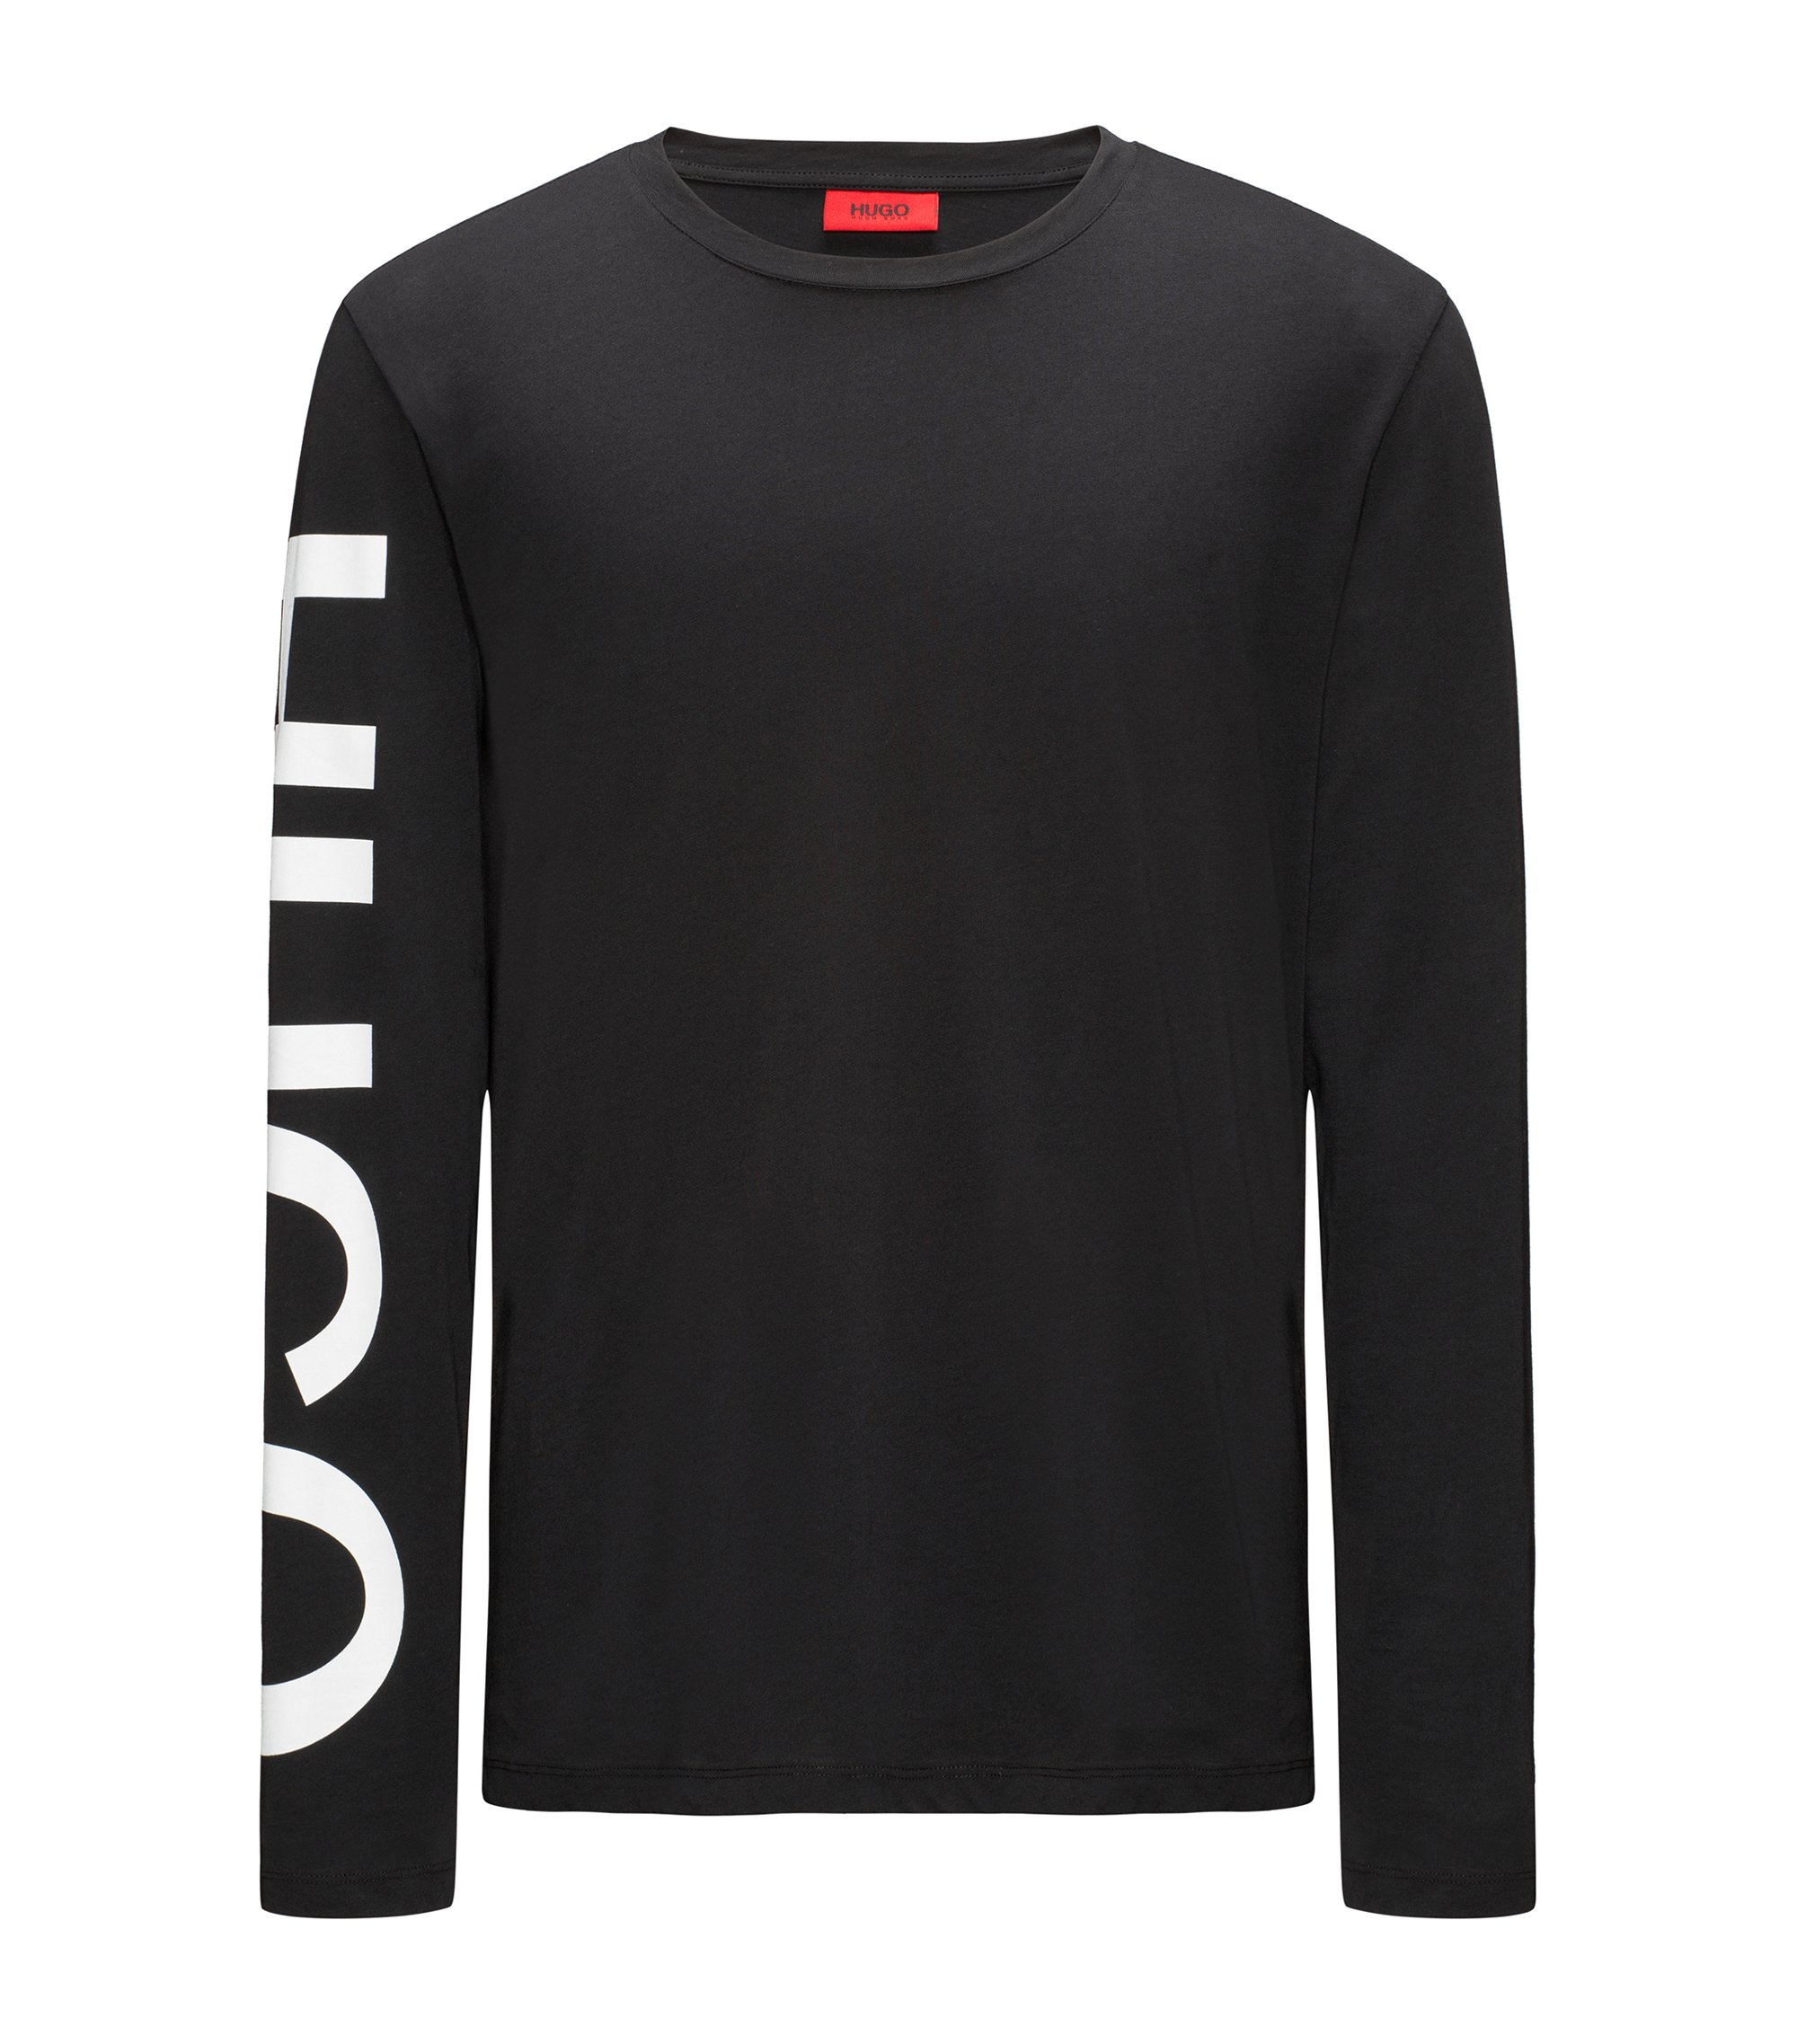 Logo-sleeve T-shirt in cotton jersey, Black